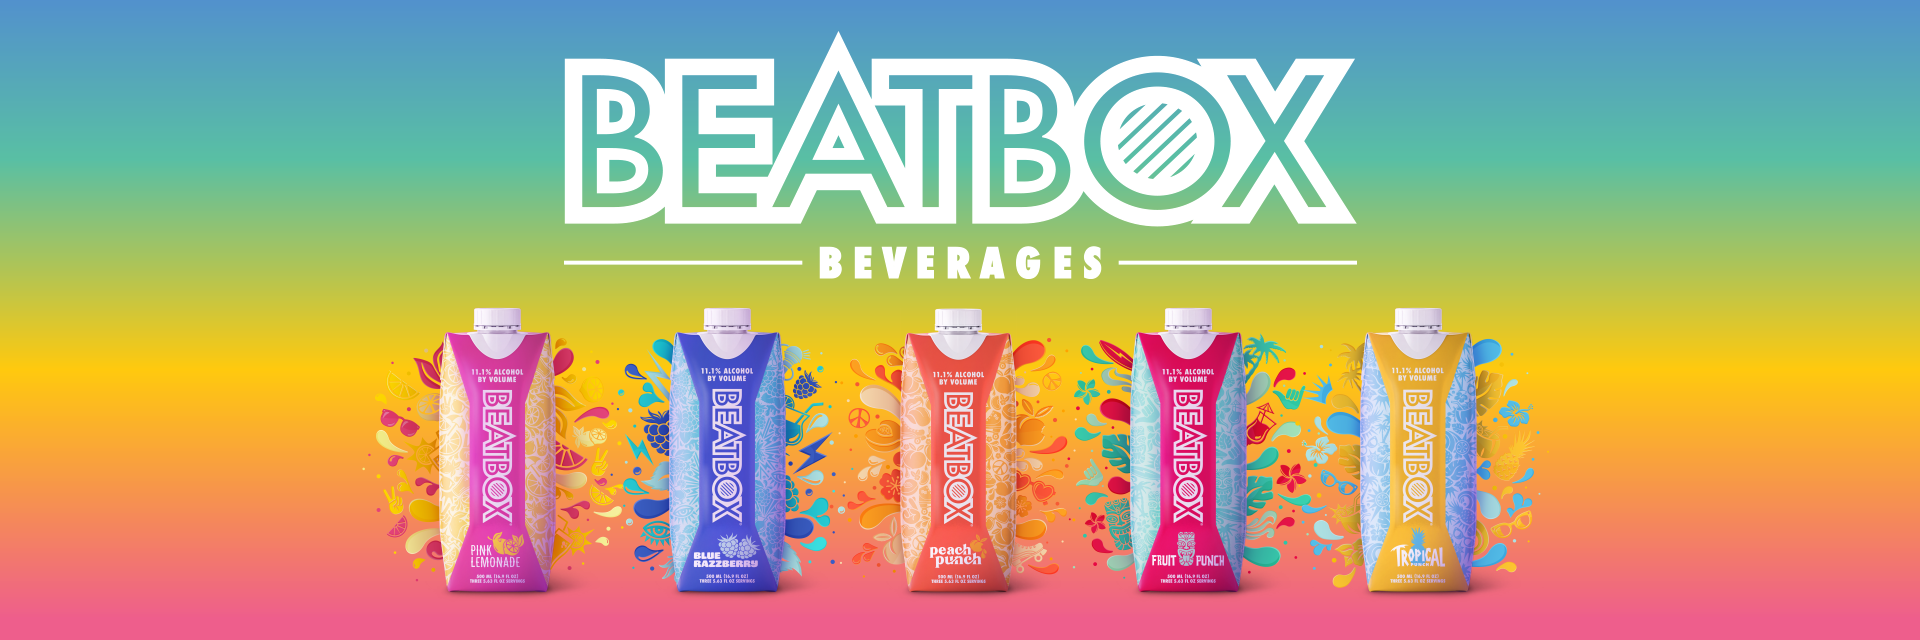 BeatBox Beverages Named Fastest-Selling US Wine and Ready-to-Drink Cocktail Brand